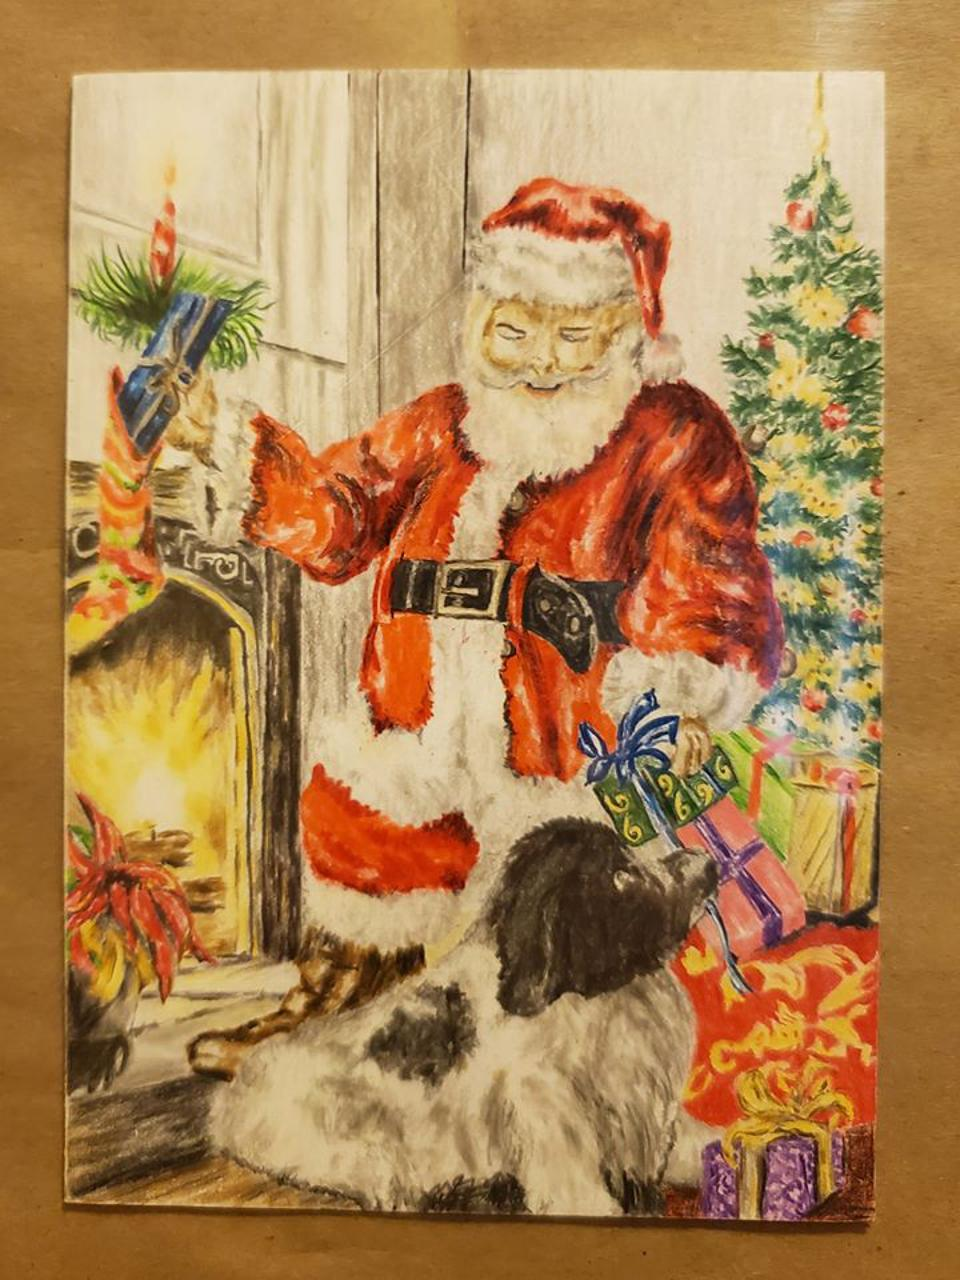 One of Ron James' hand made Christmas cards.